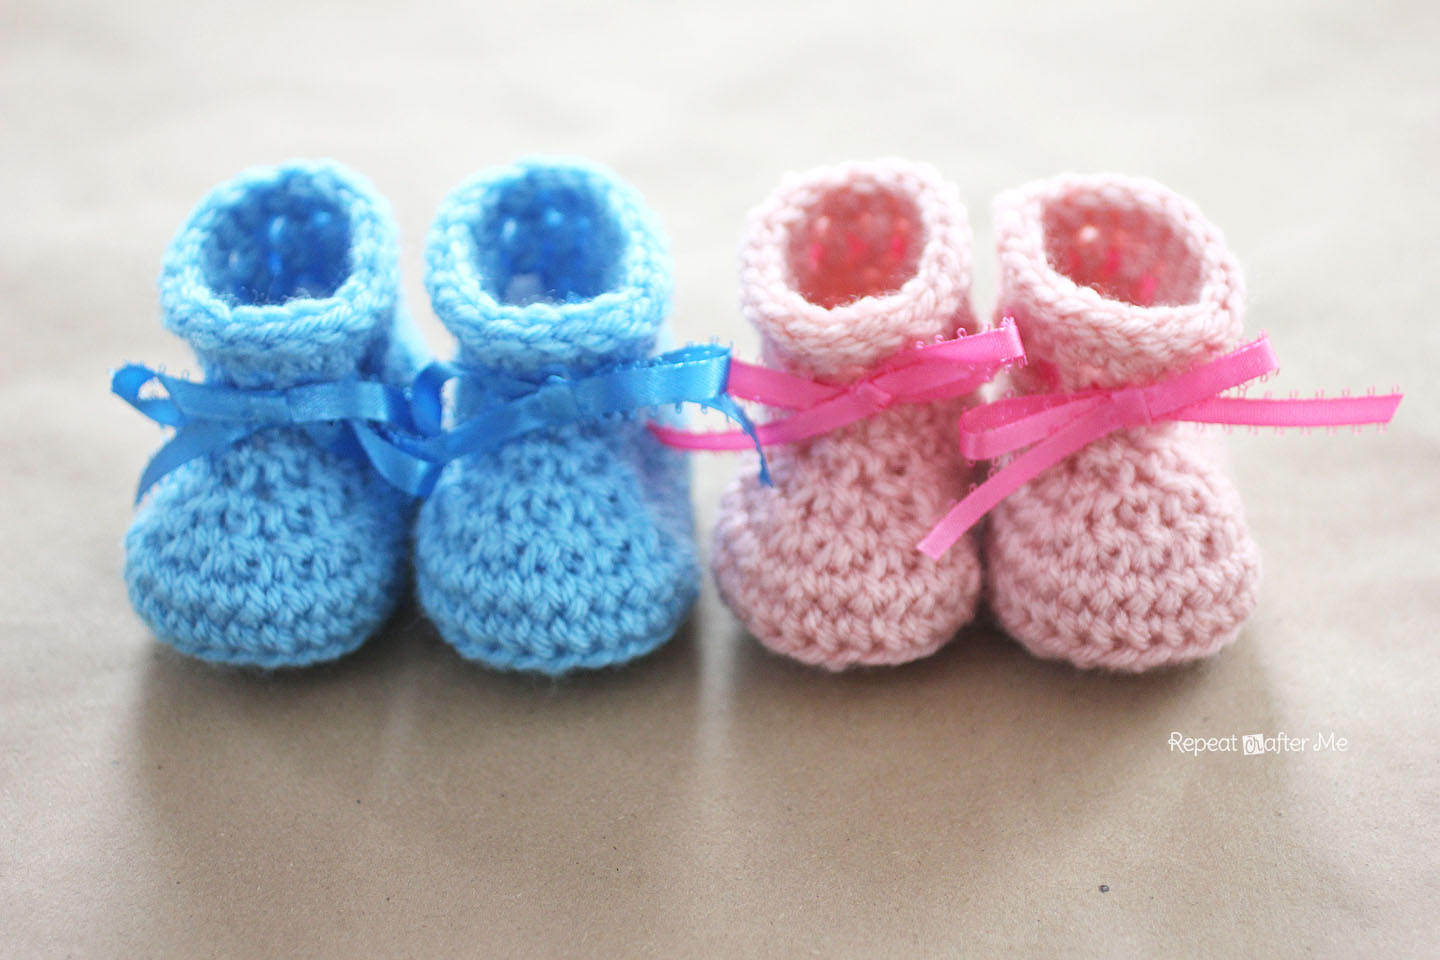 Crochet newborn baby booties pattern repeat crafter me crochet newborn baby booties pattern dt1010fo